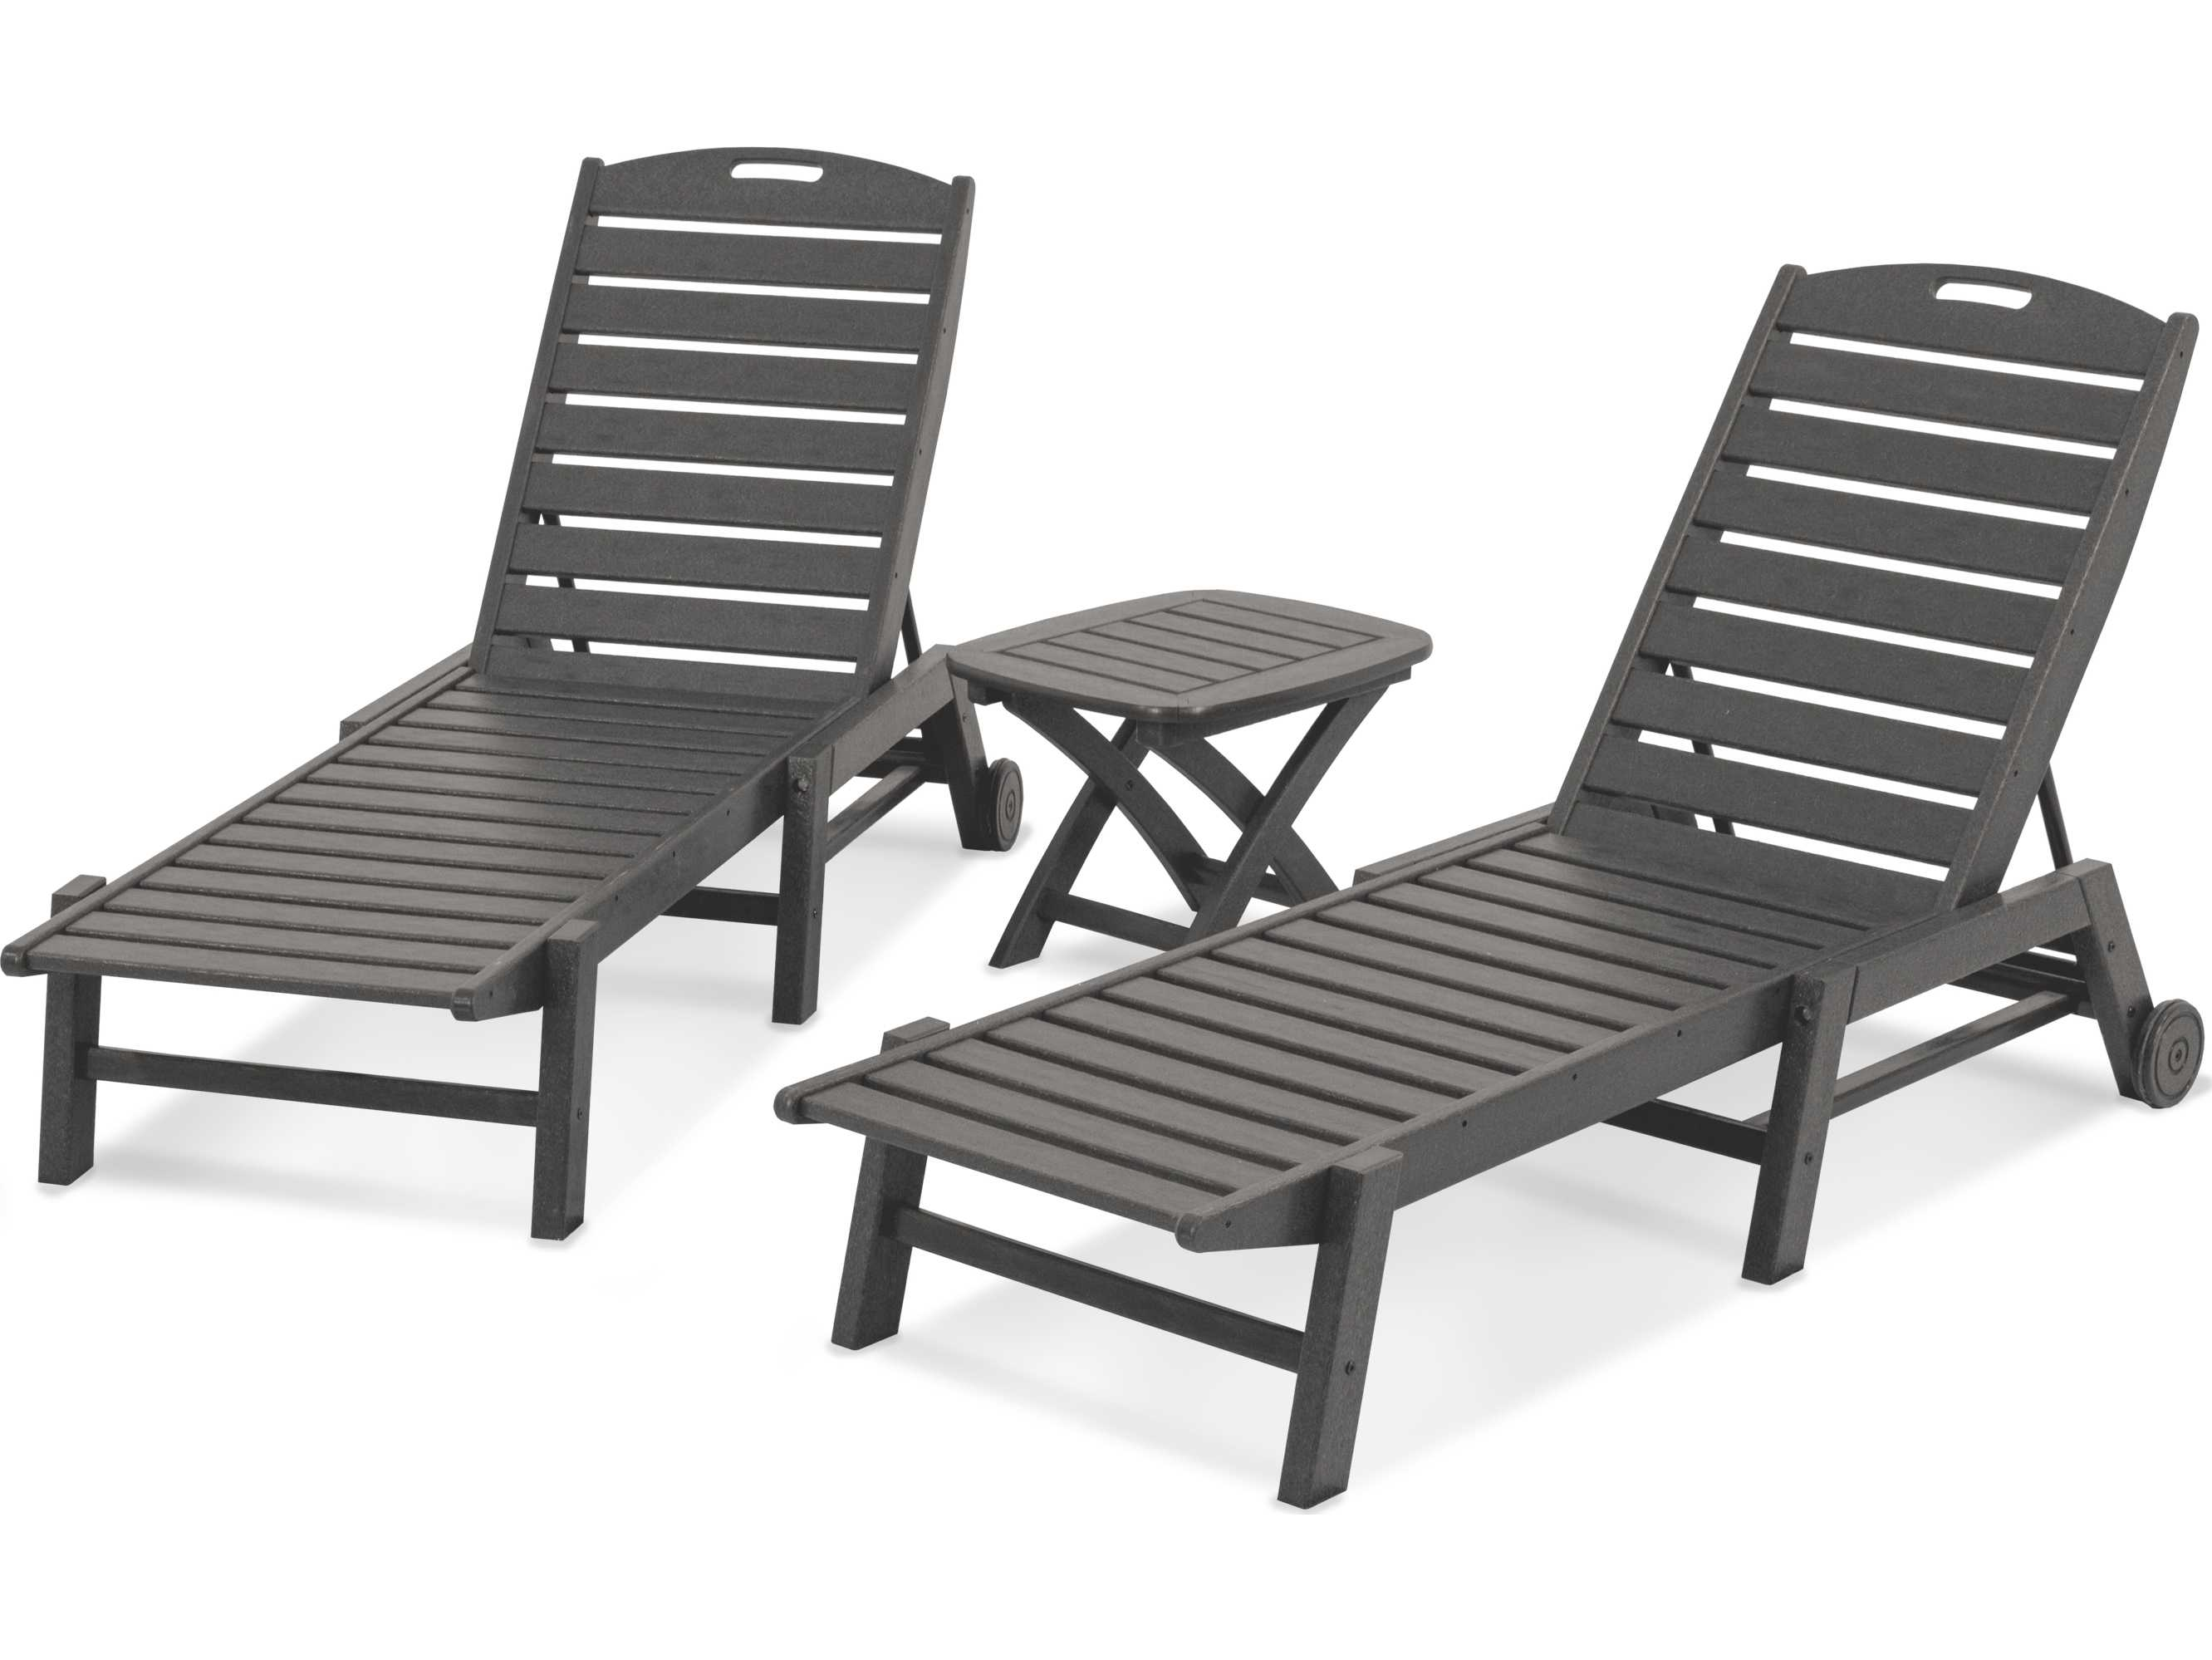 polywood nautical recycled plastic 3 piece chaise set. Black Bedroom Furniture Sets. Home Design Ideas